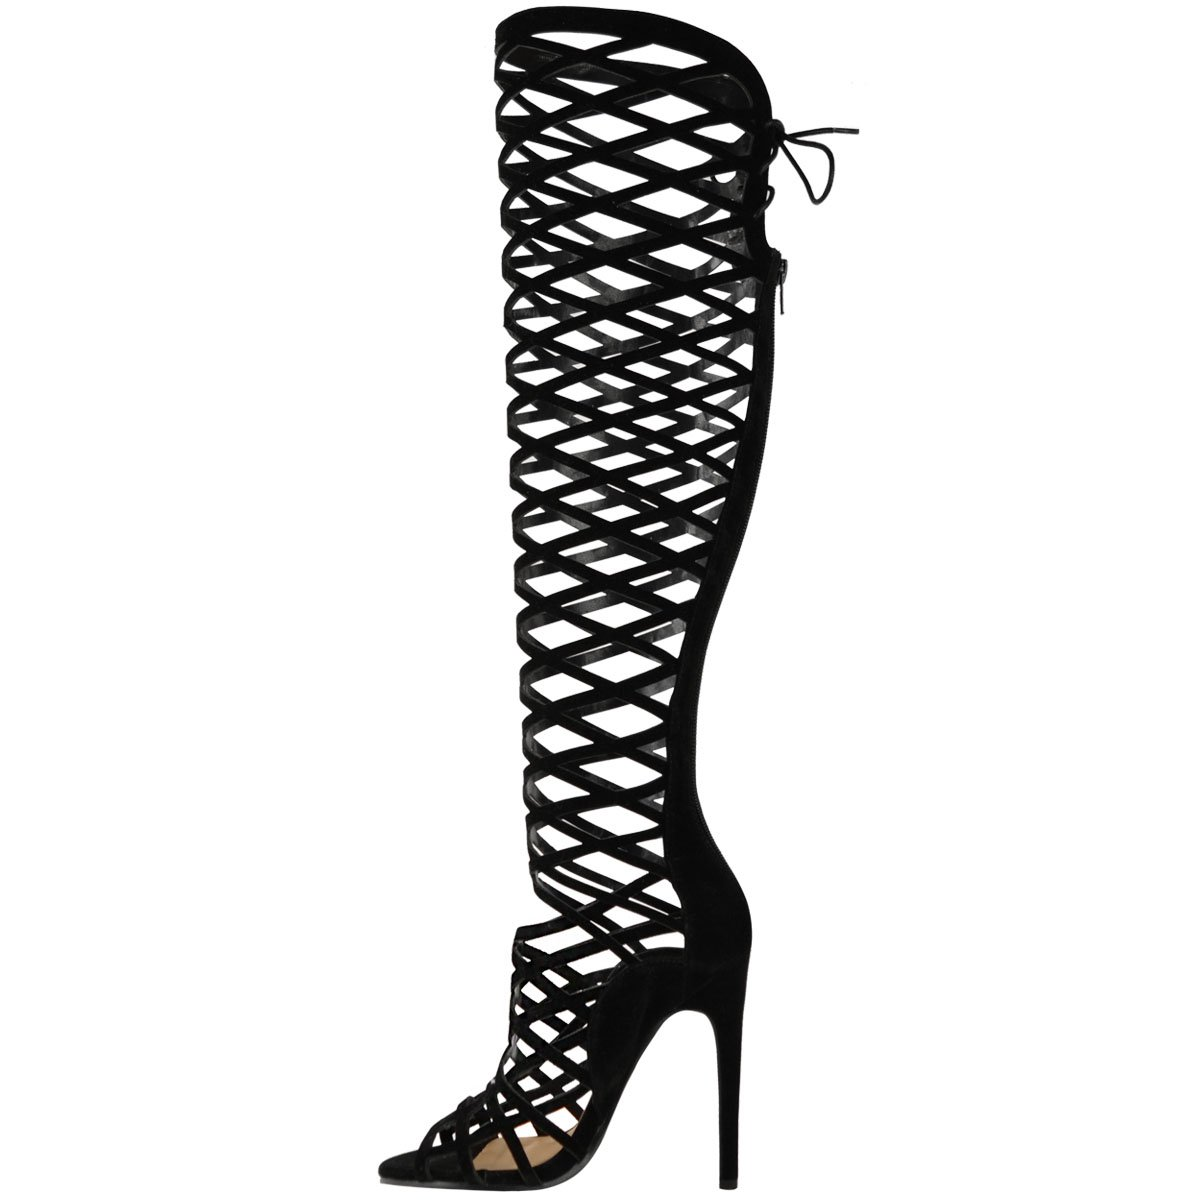 f1266e480e2 Fashion Thirsty Womens Cut Out Lace Knee High Heel Boots Gladiator Sandals  Strappy Size